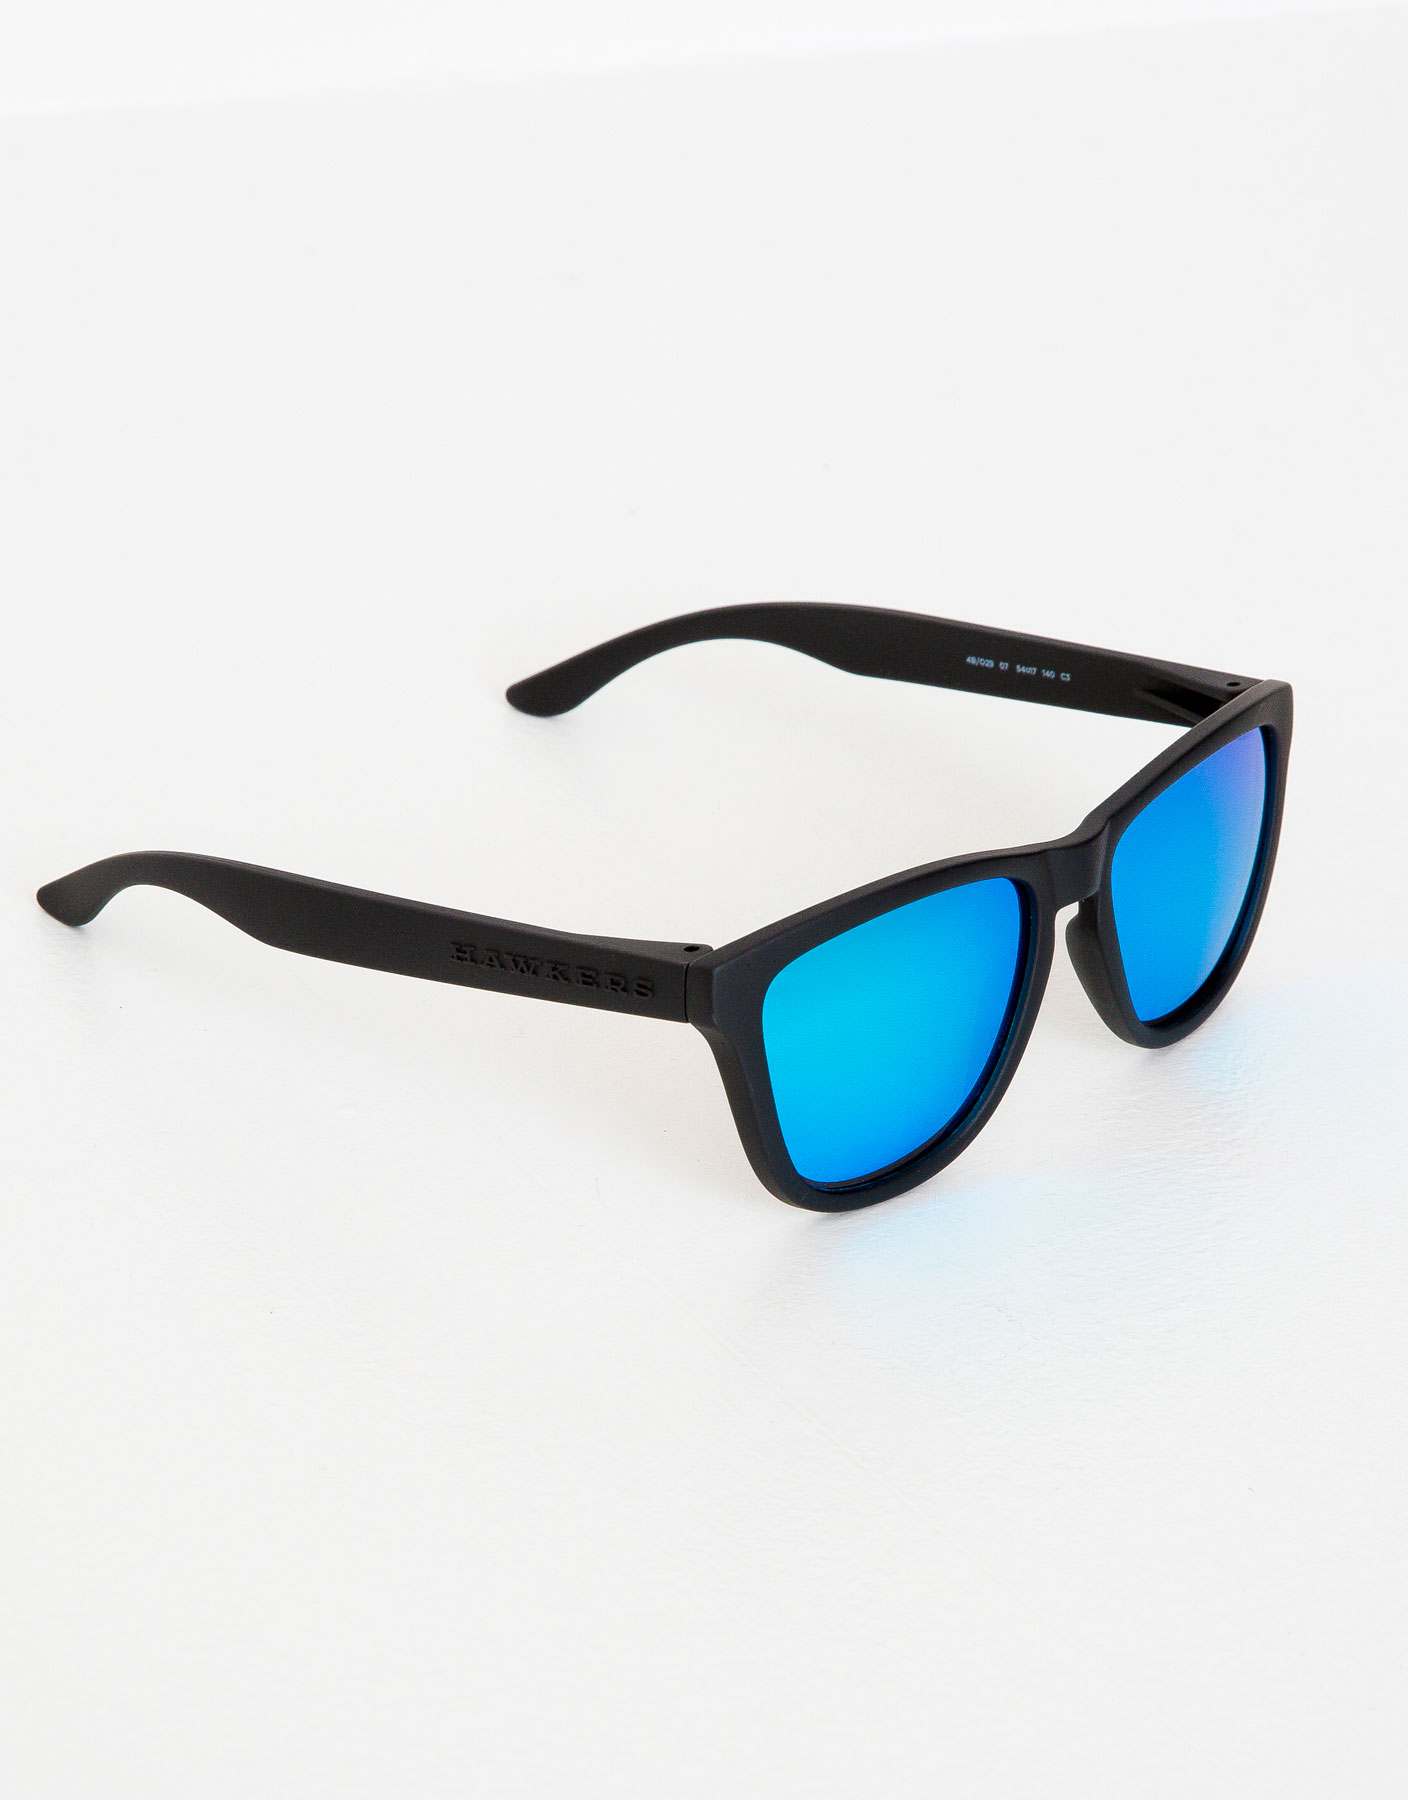 Occhiali da sole hawkers carbon black clear blue one